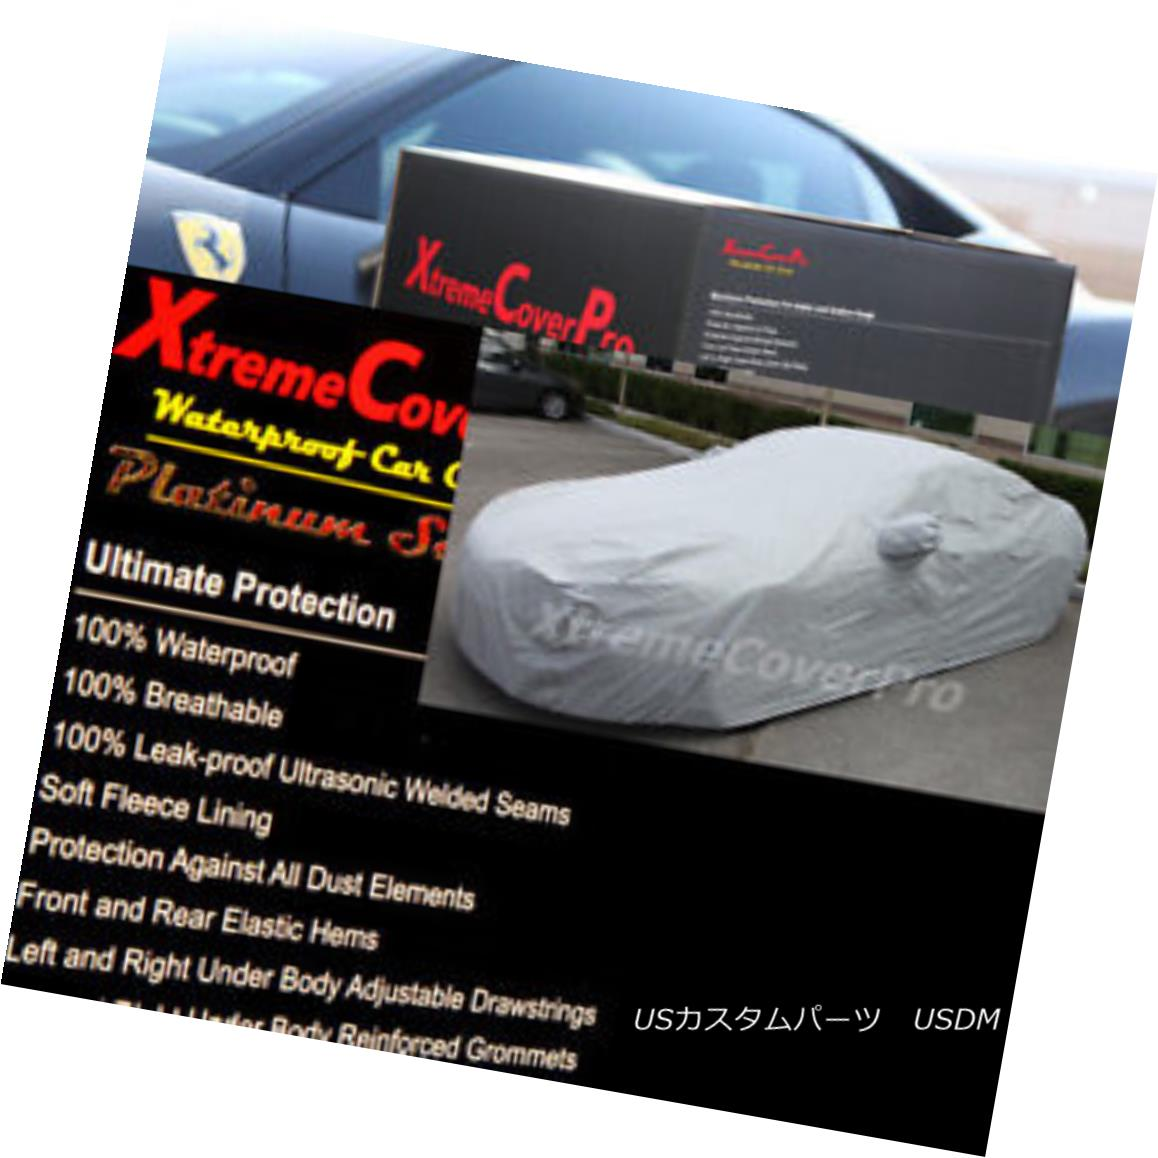 カーカバー 1992 1993 1994 Chevy Cavalier Sedan Waterproof Car Cover w/MirrorPocket 1992 1993 1994シボレー・キャバリア・セダン防水カーカバー付き(MirrorPocket)